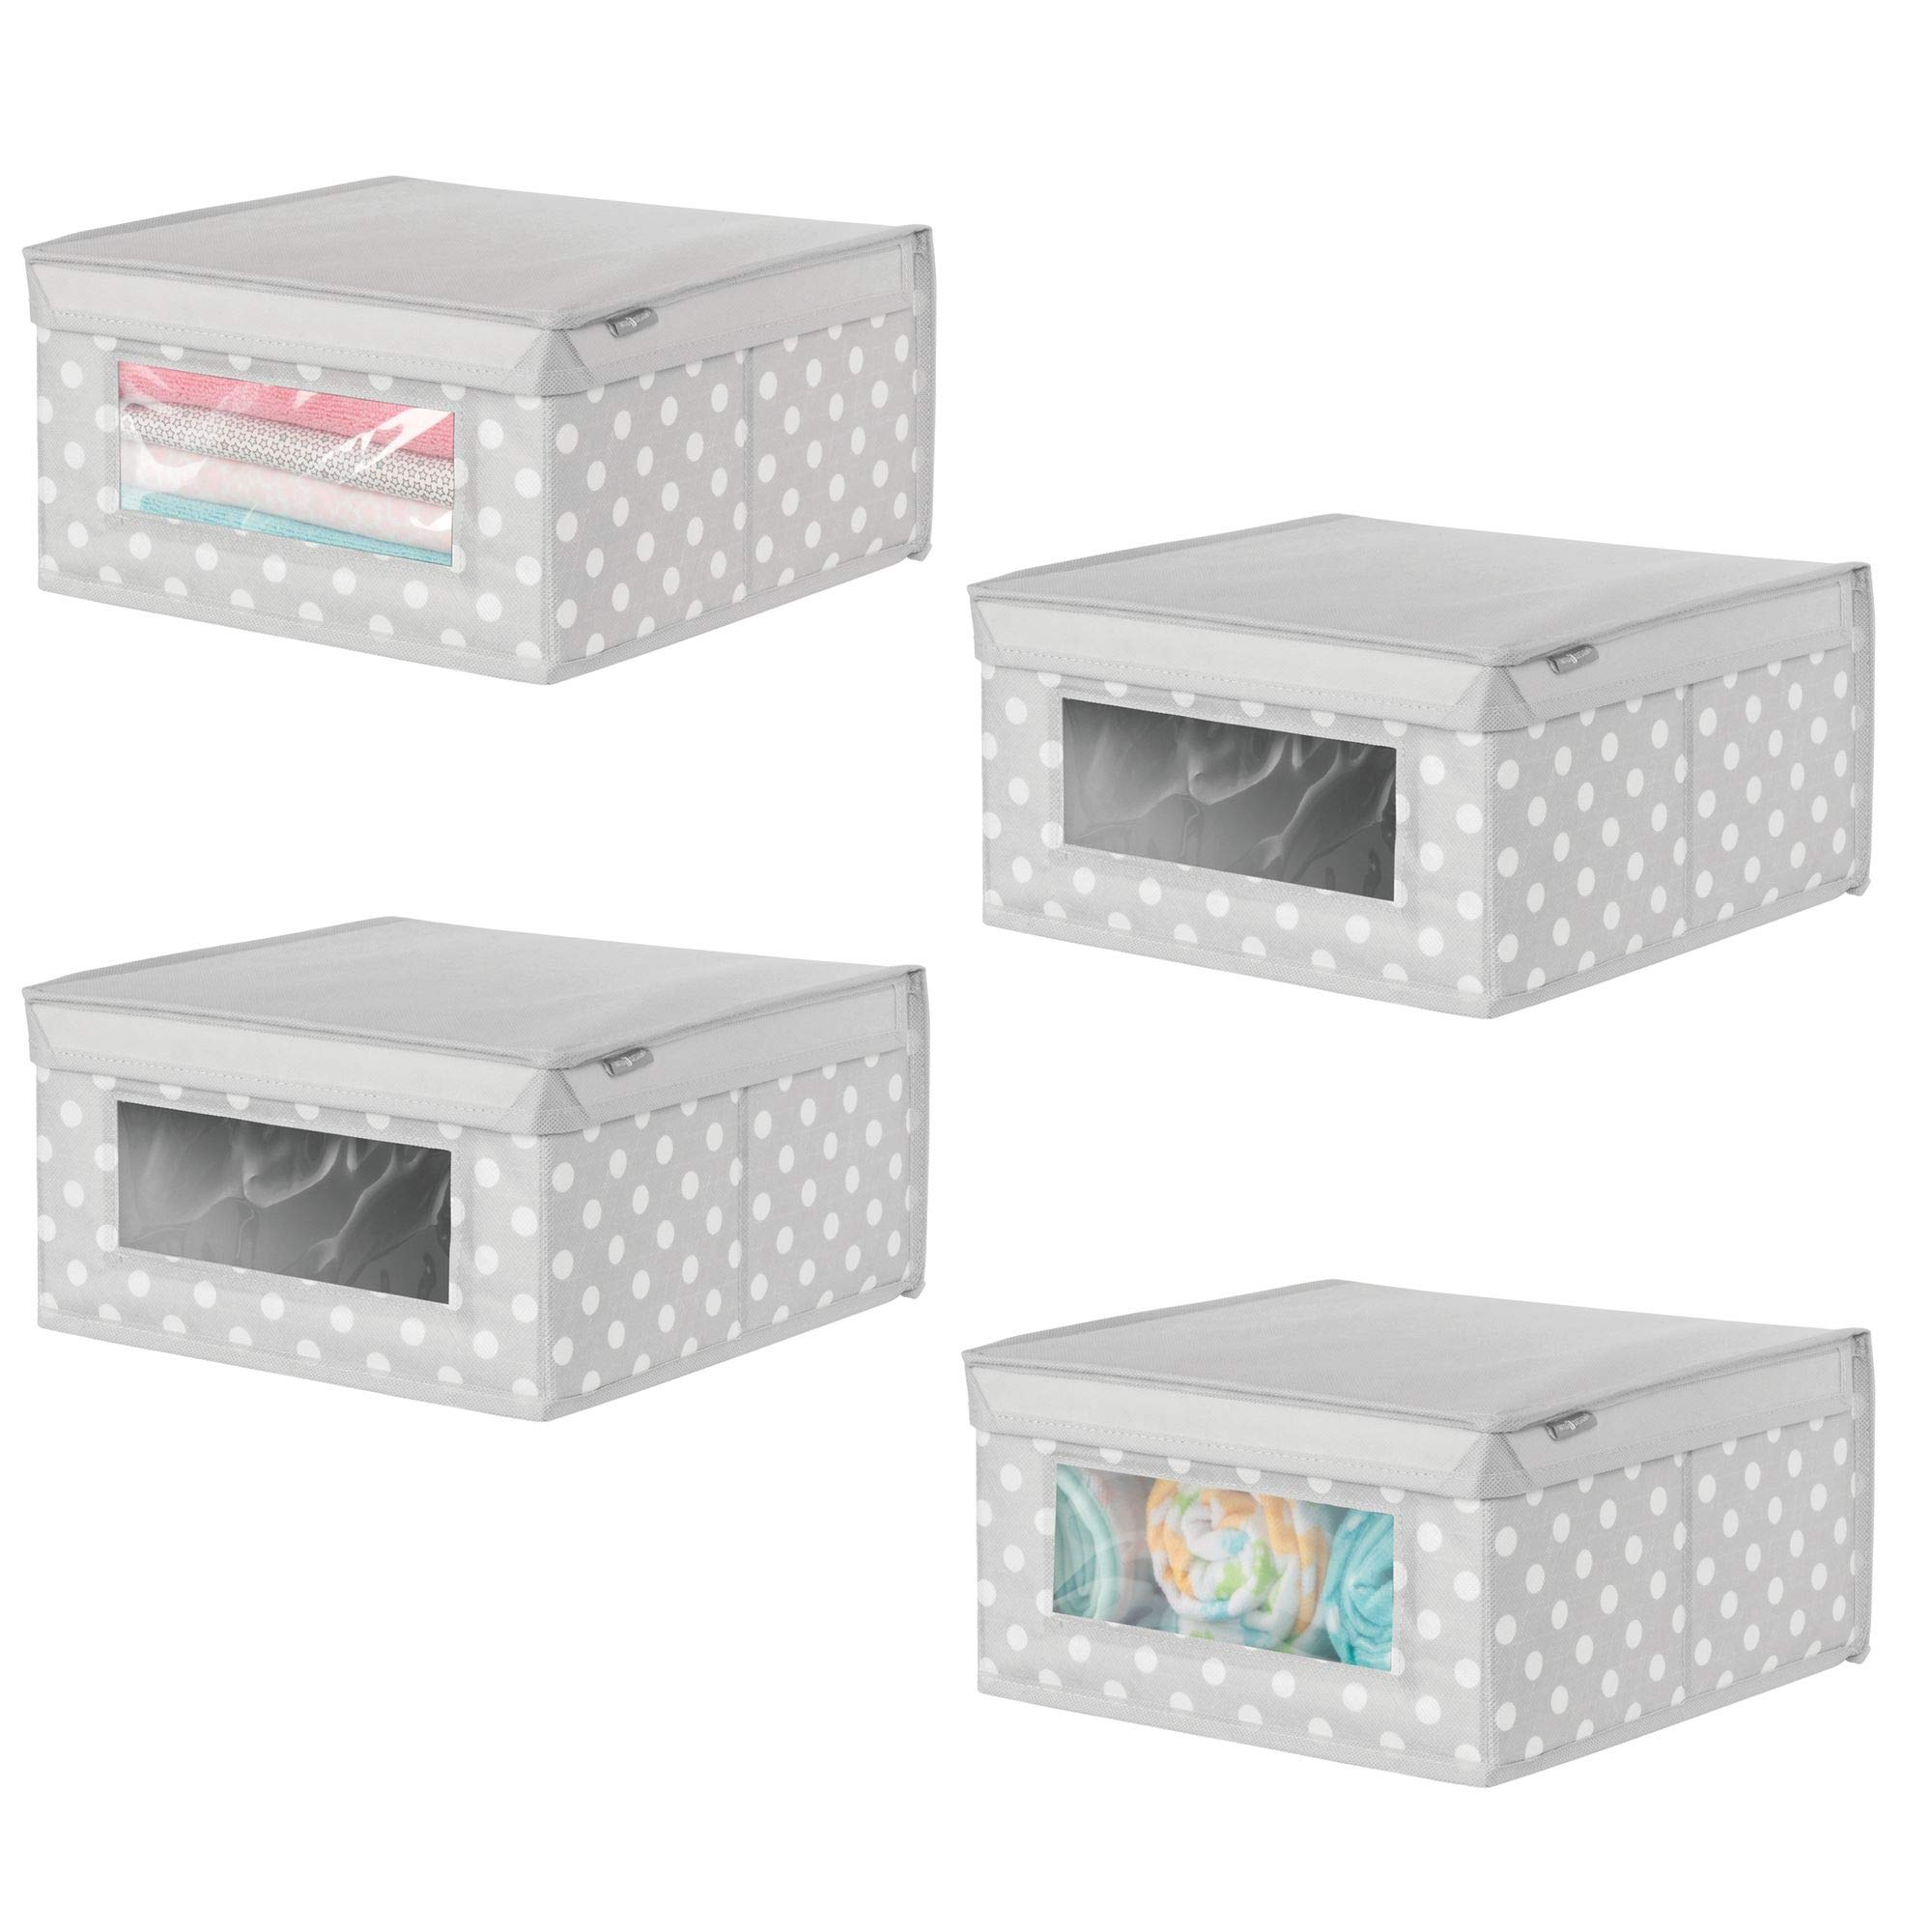 mDesign Soft Stackable Fabric Closet Storage Organizer Holder Box - Clear Window, Attached Hinged Lid, for Child/Baby Room, Nursery - Polka Dot Pattern � Medium, Pack of 4, Light Gray with White Dots